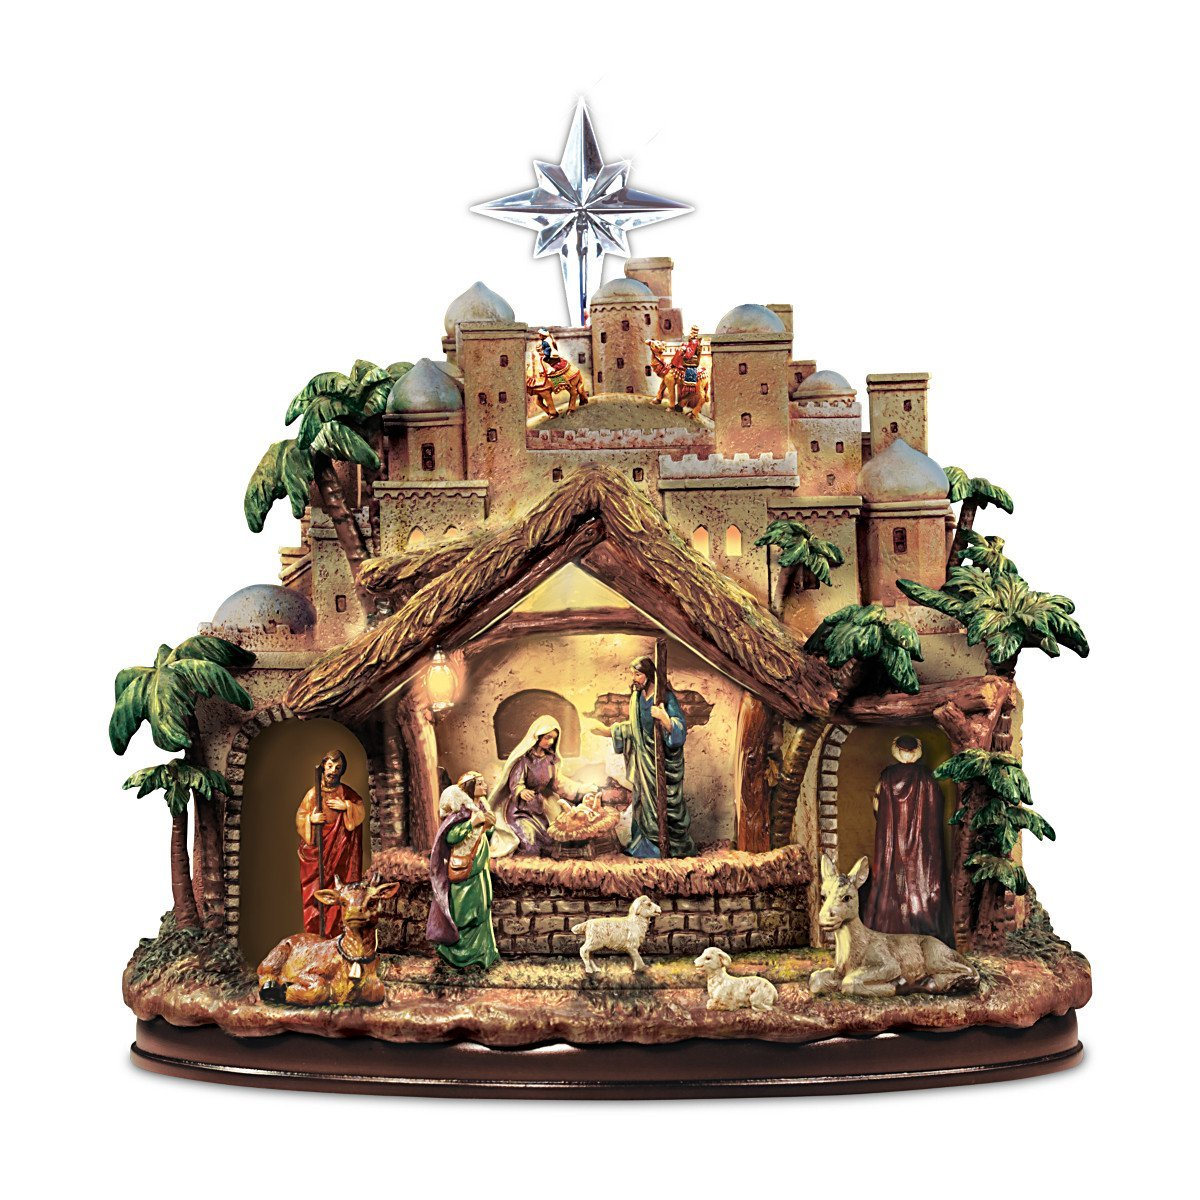 Thomas Kinkade Nativity Scene Sculpture